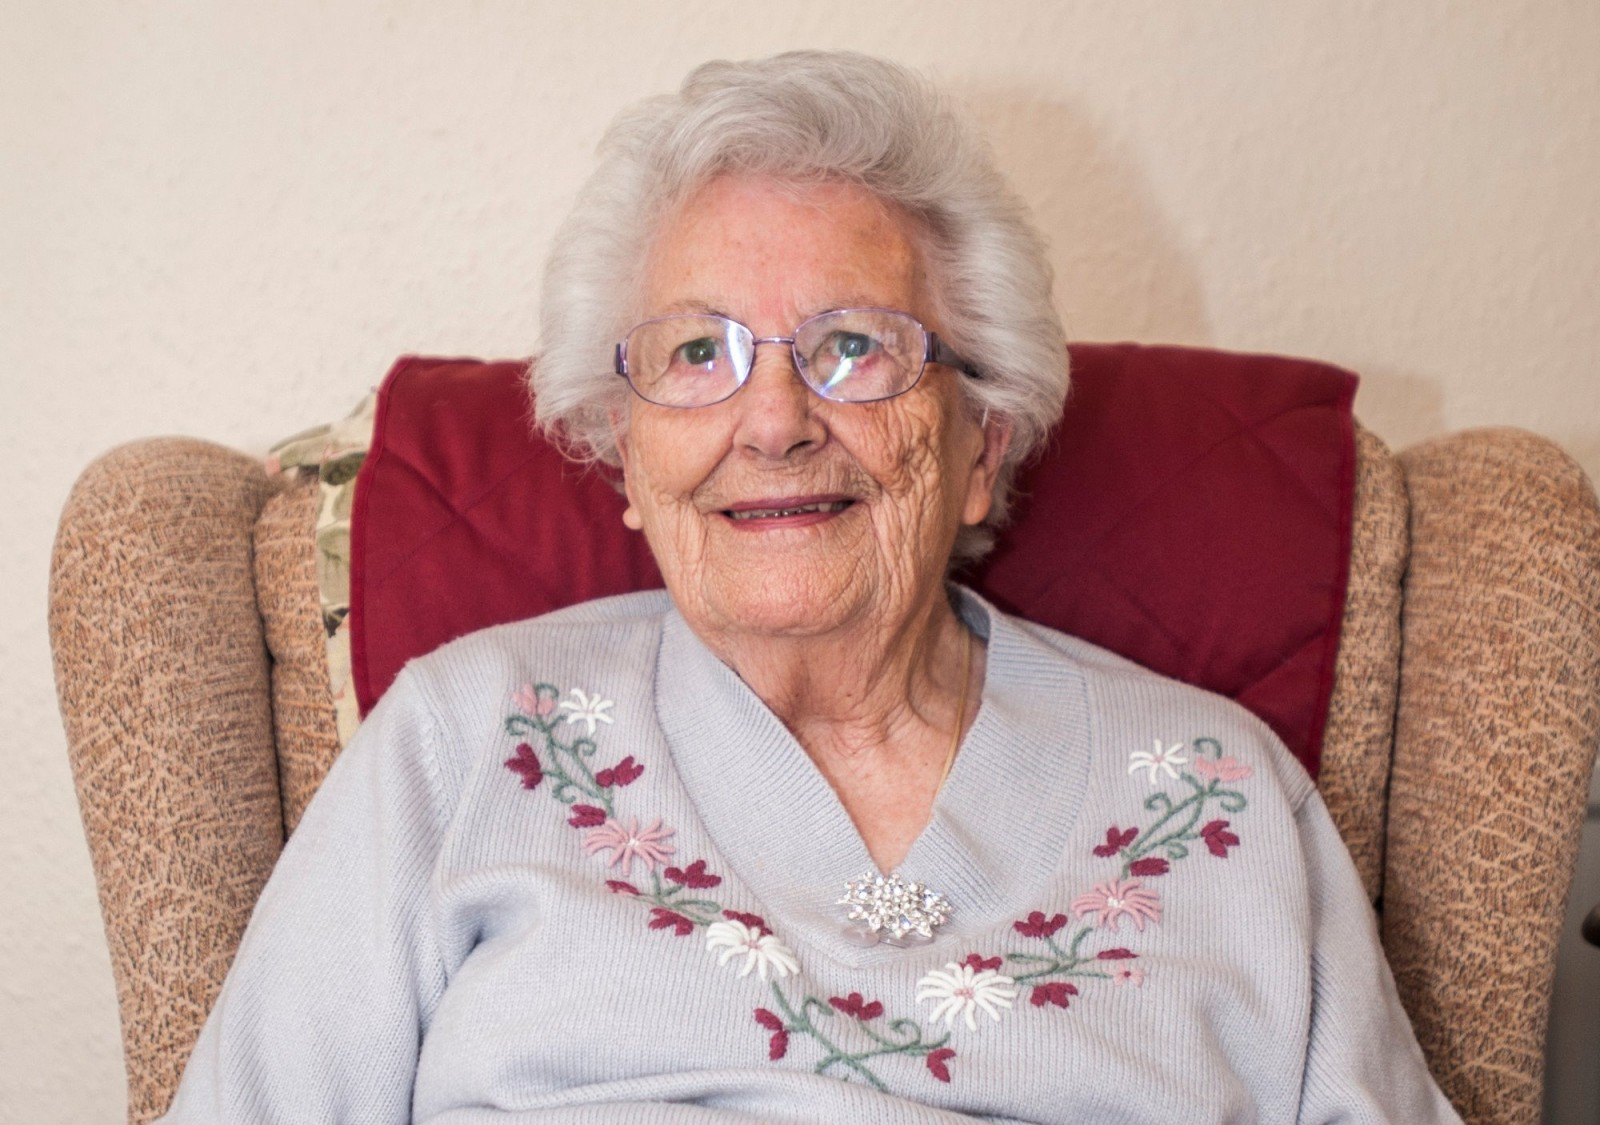 90-year-old Elizabeth celebrates her birthday on the same day as the Queen